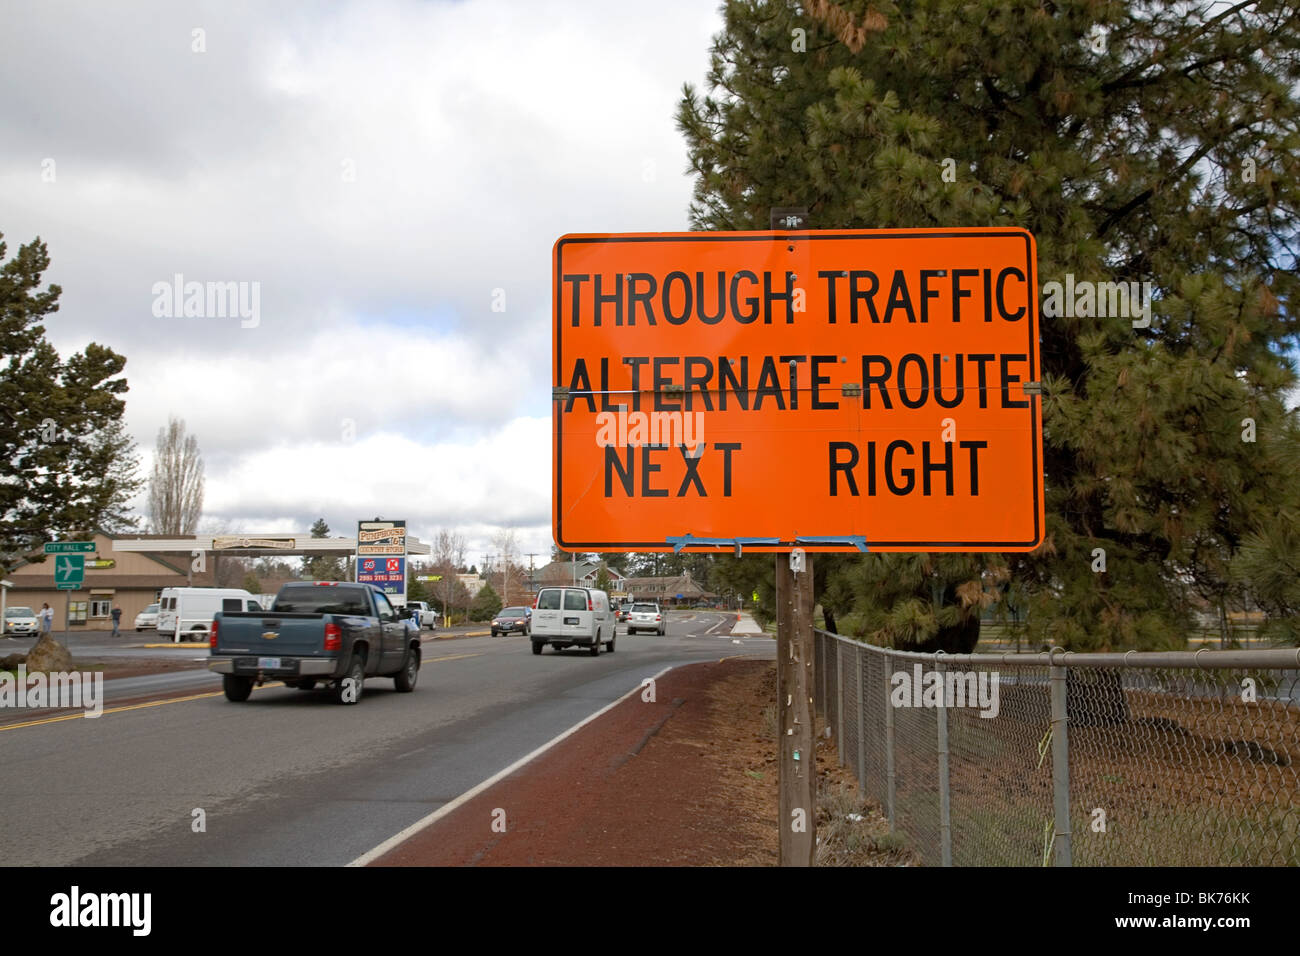 A traffic detour sign at a highway road construction site - Stock Image